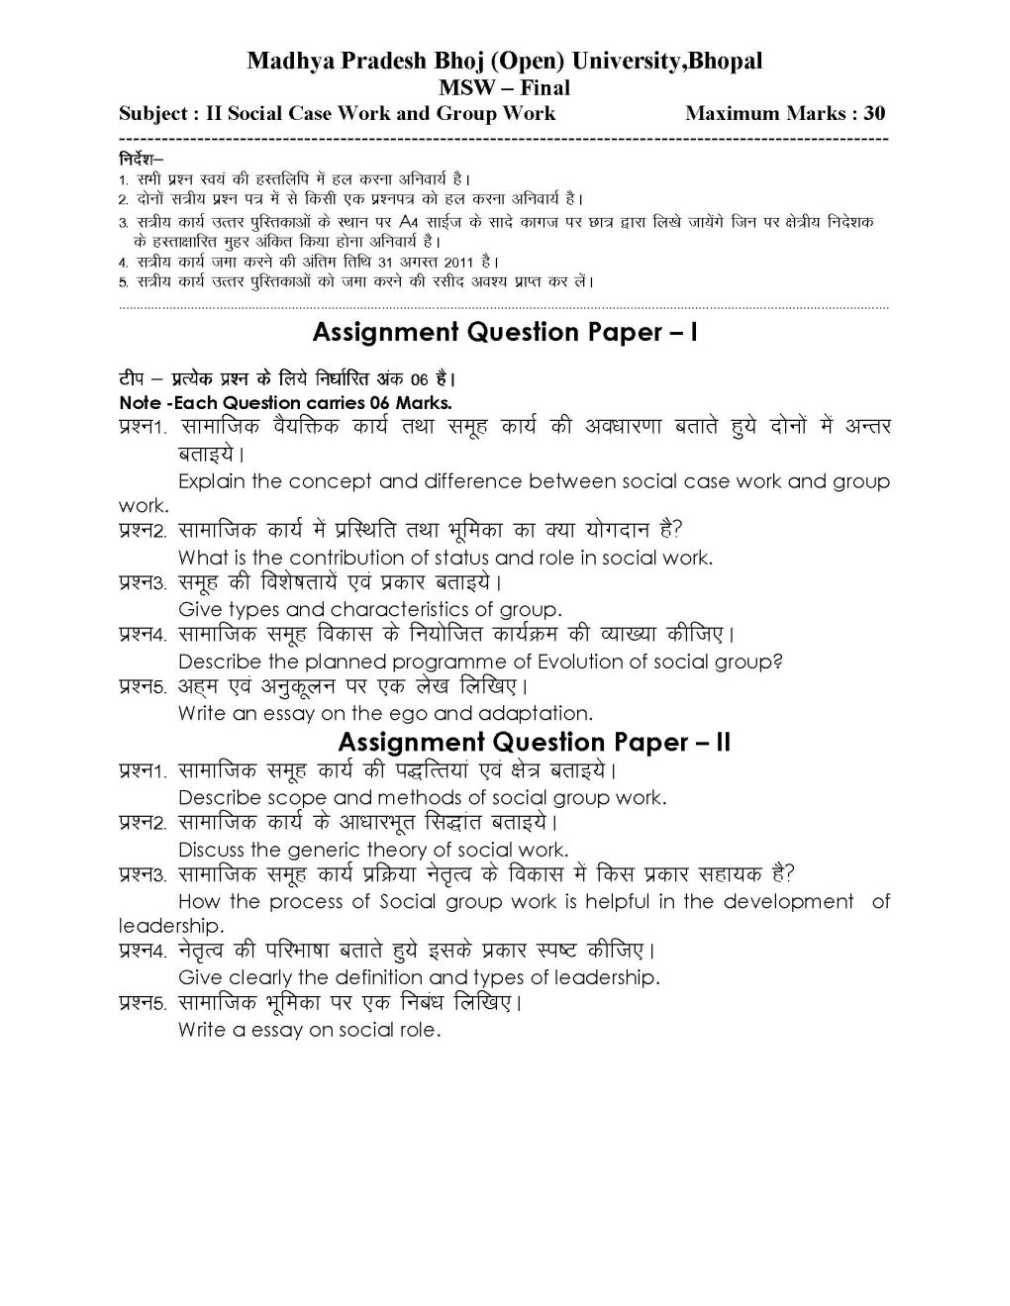 011 Bhoj University Bhopal Msw Leadership Experience Essay Dreaded For Scholarship Describe Your Examples Full